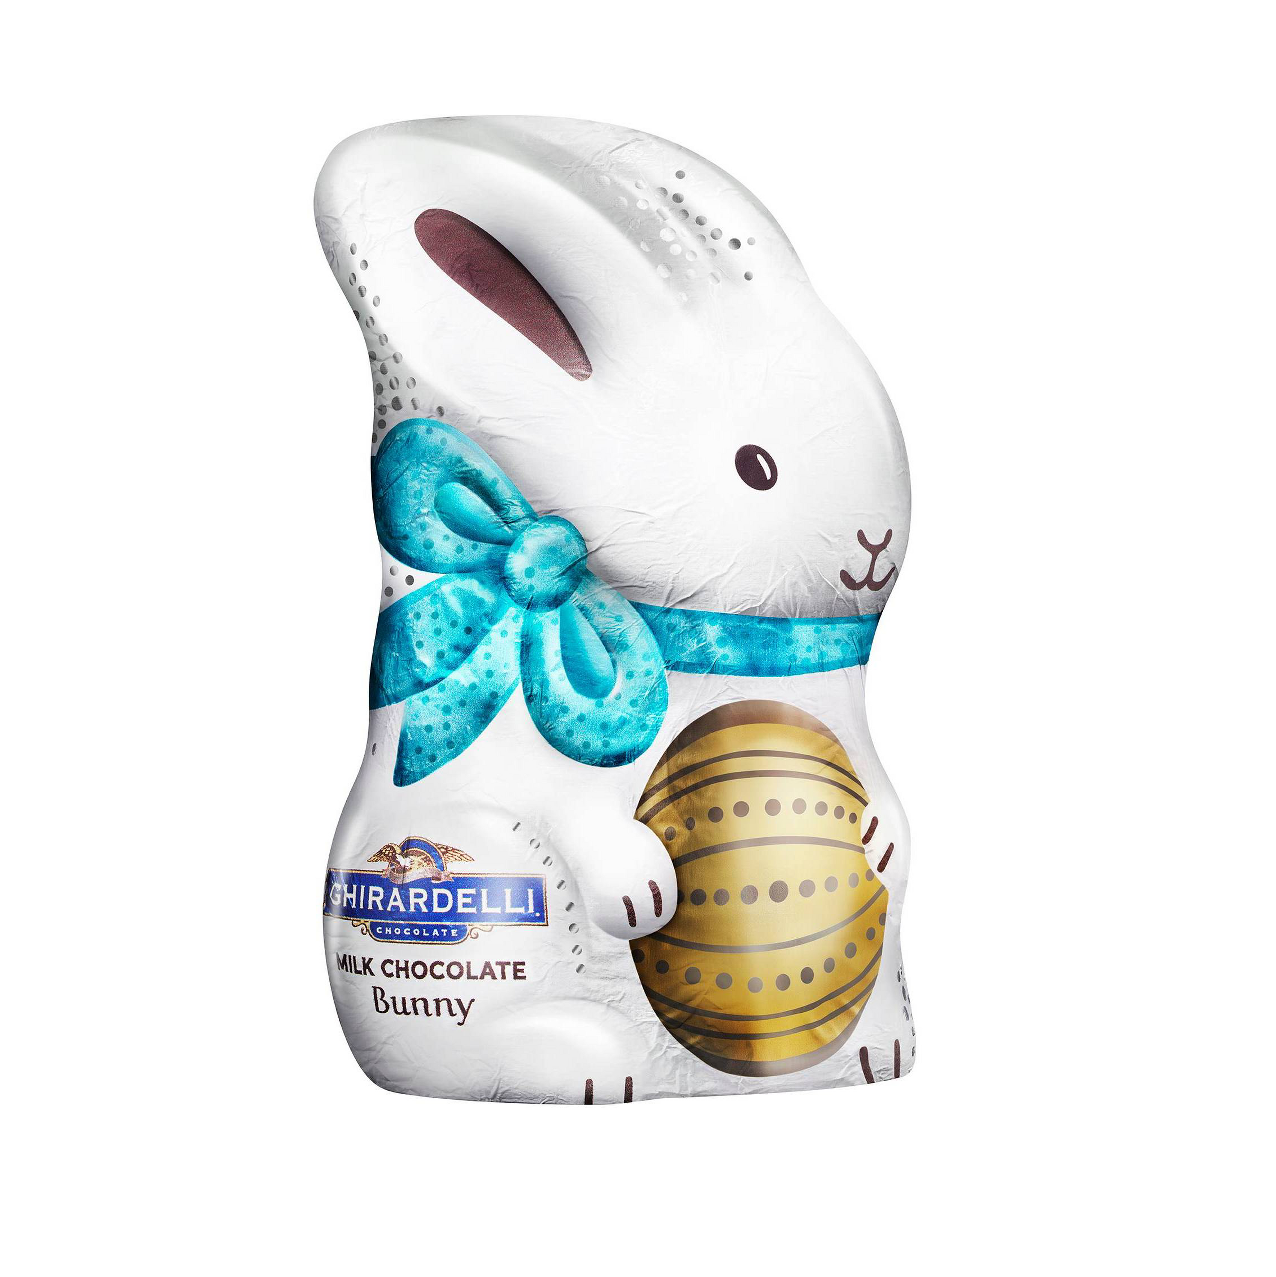 Ghirardelli Easter Hollow Milk Chocolate Bunny